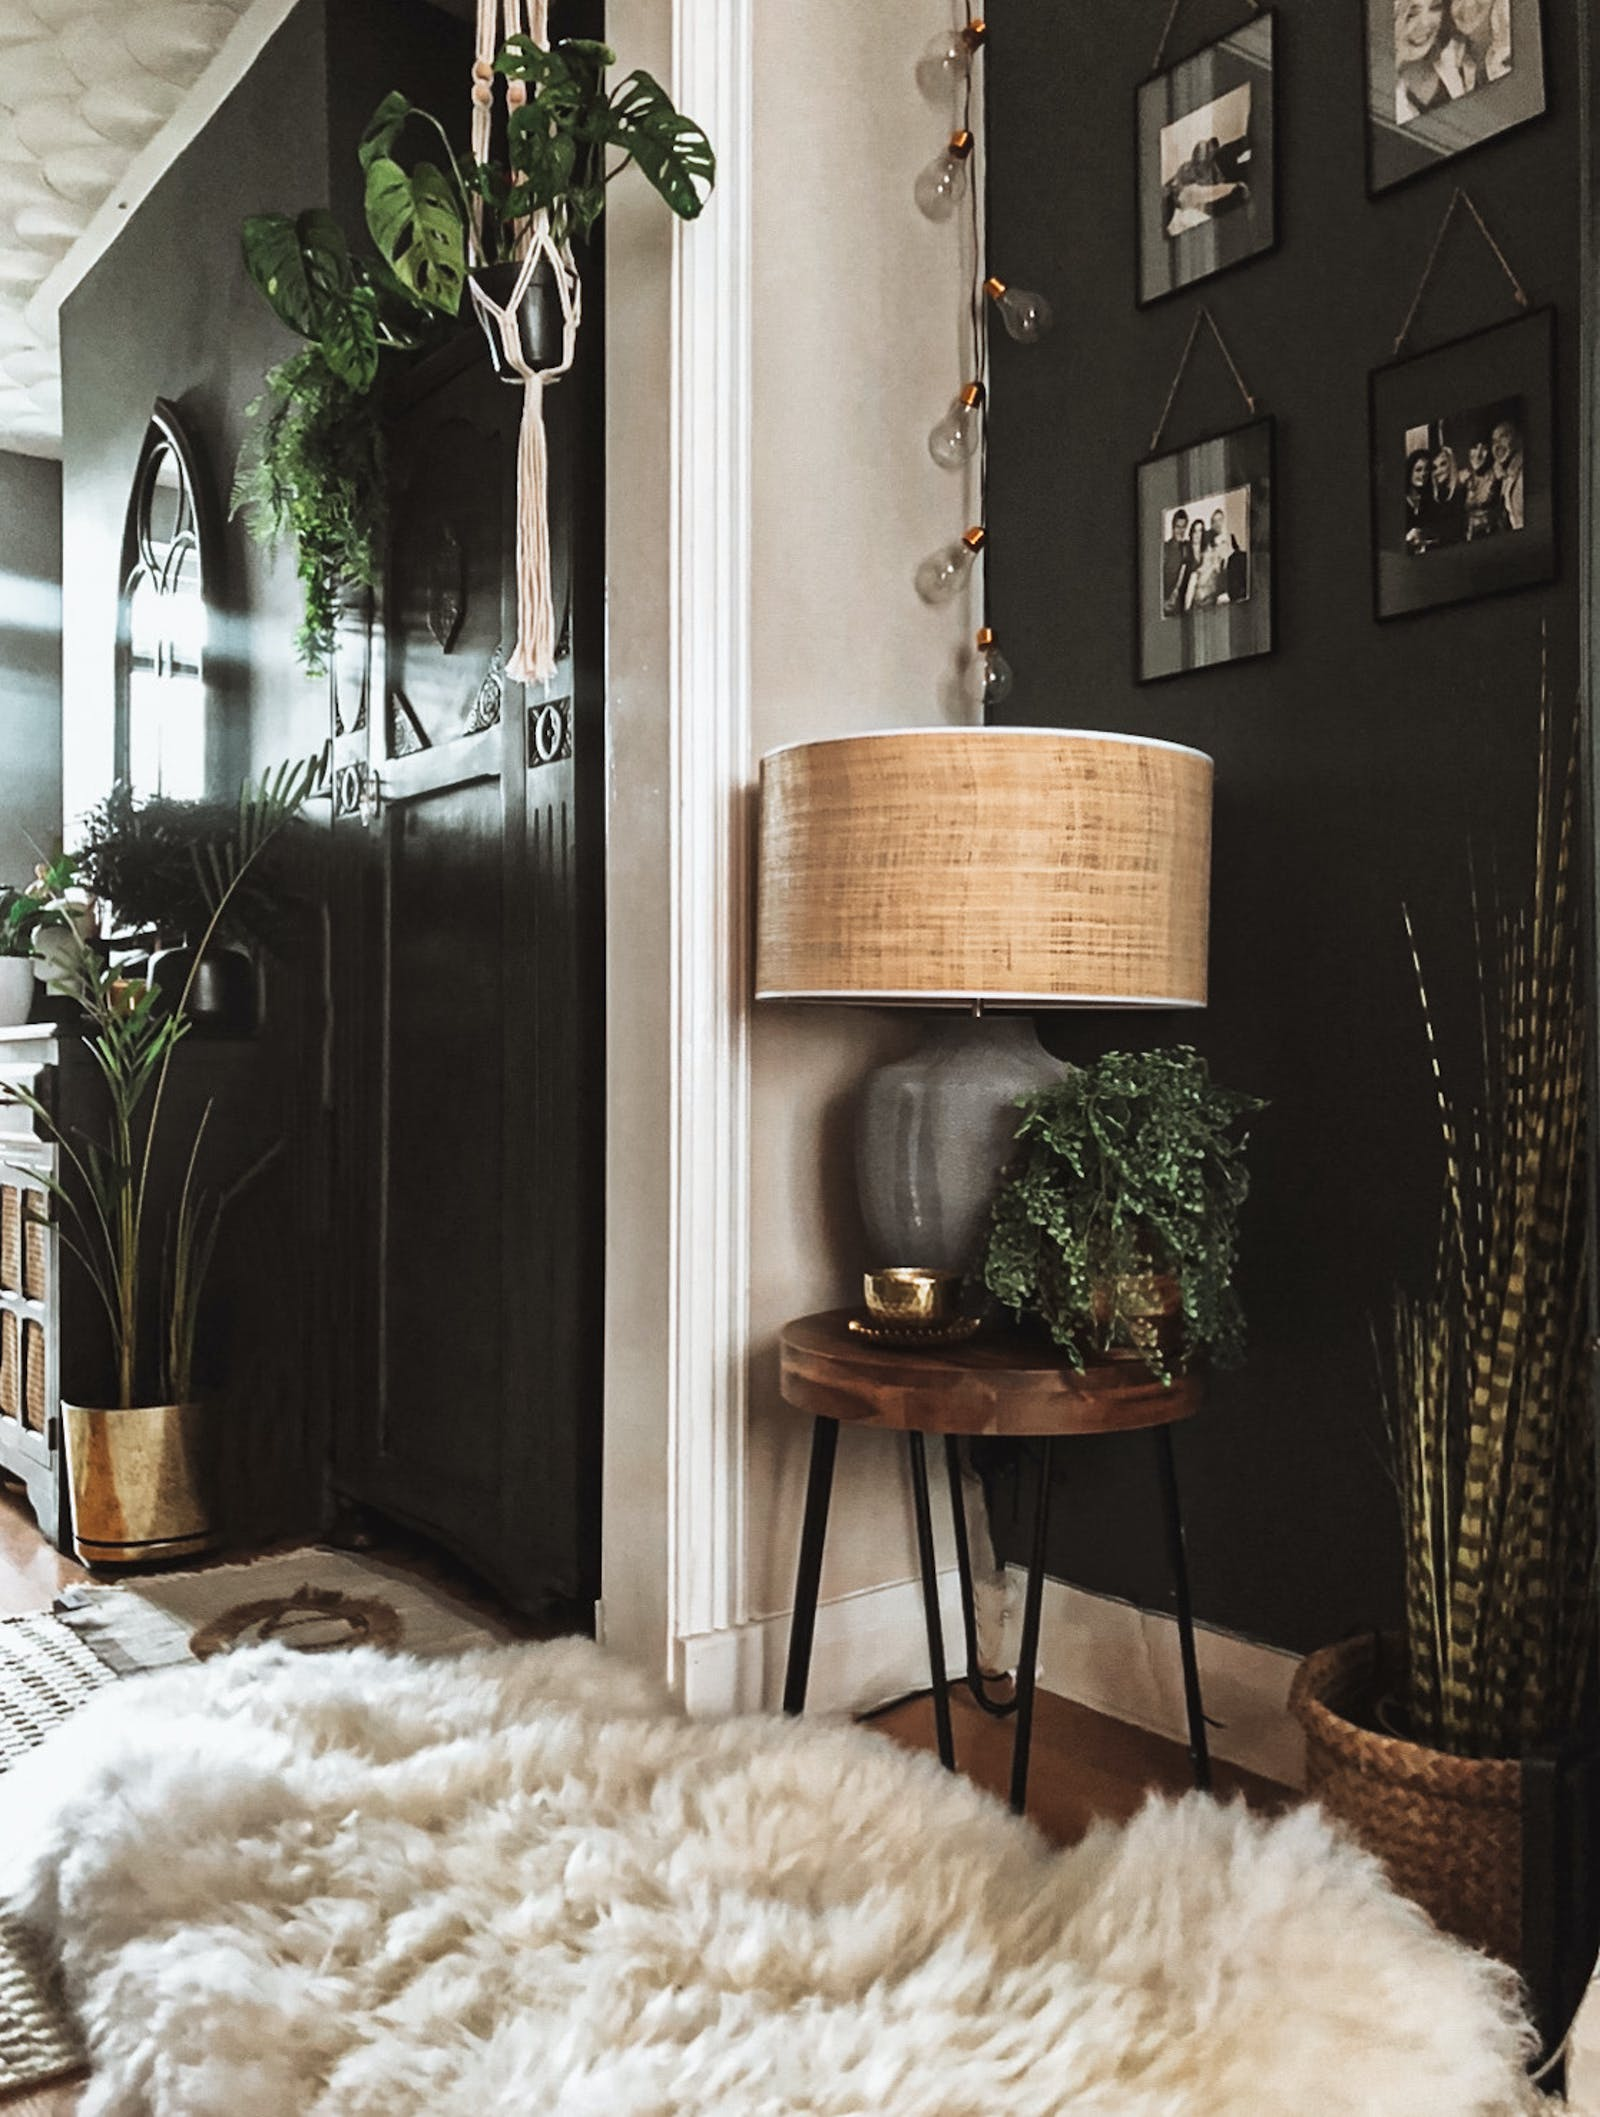 Hallway corner with black wall and a fuzzy rug